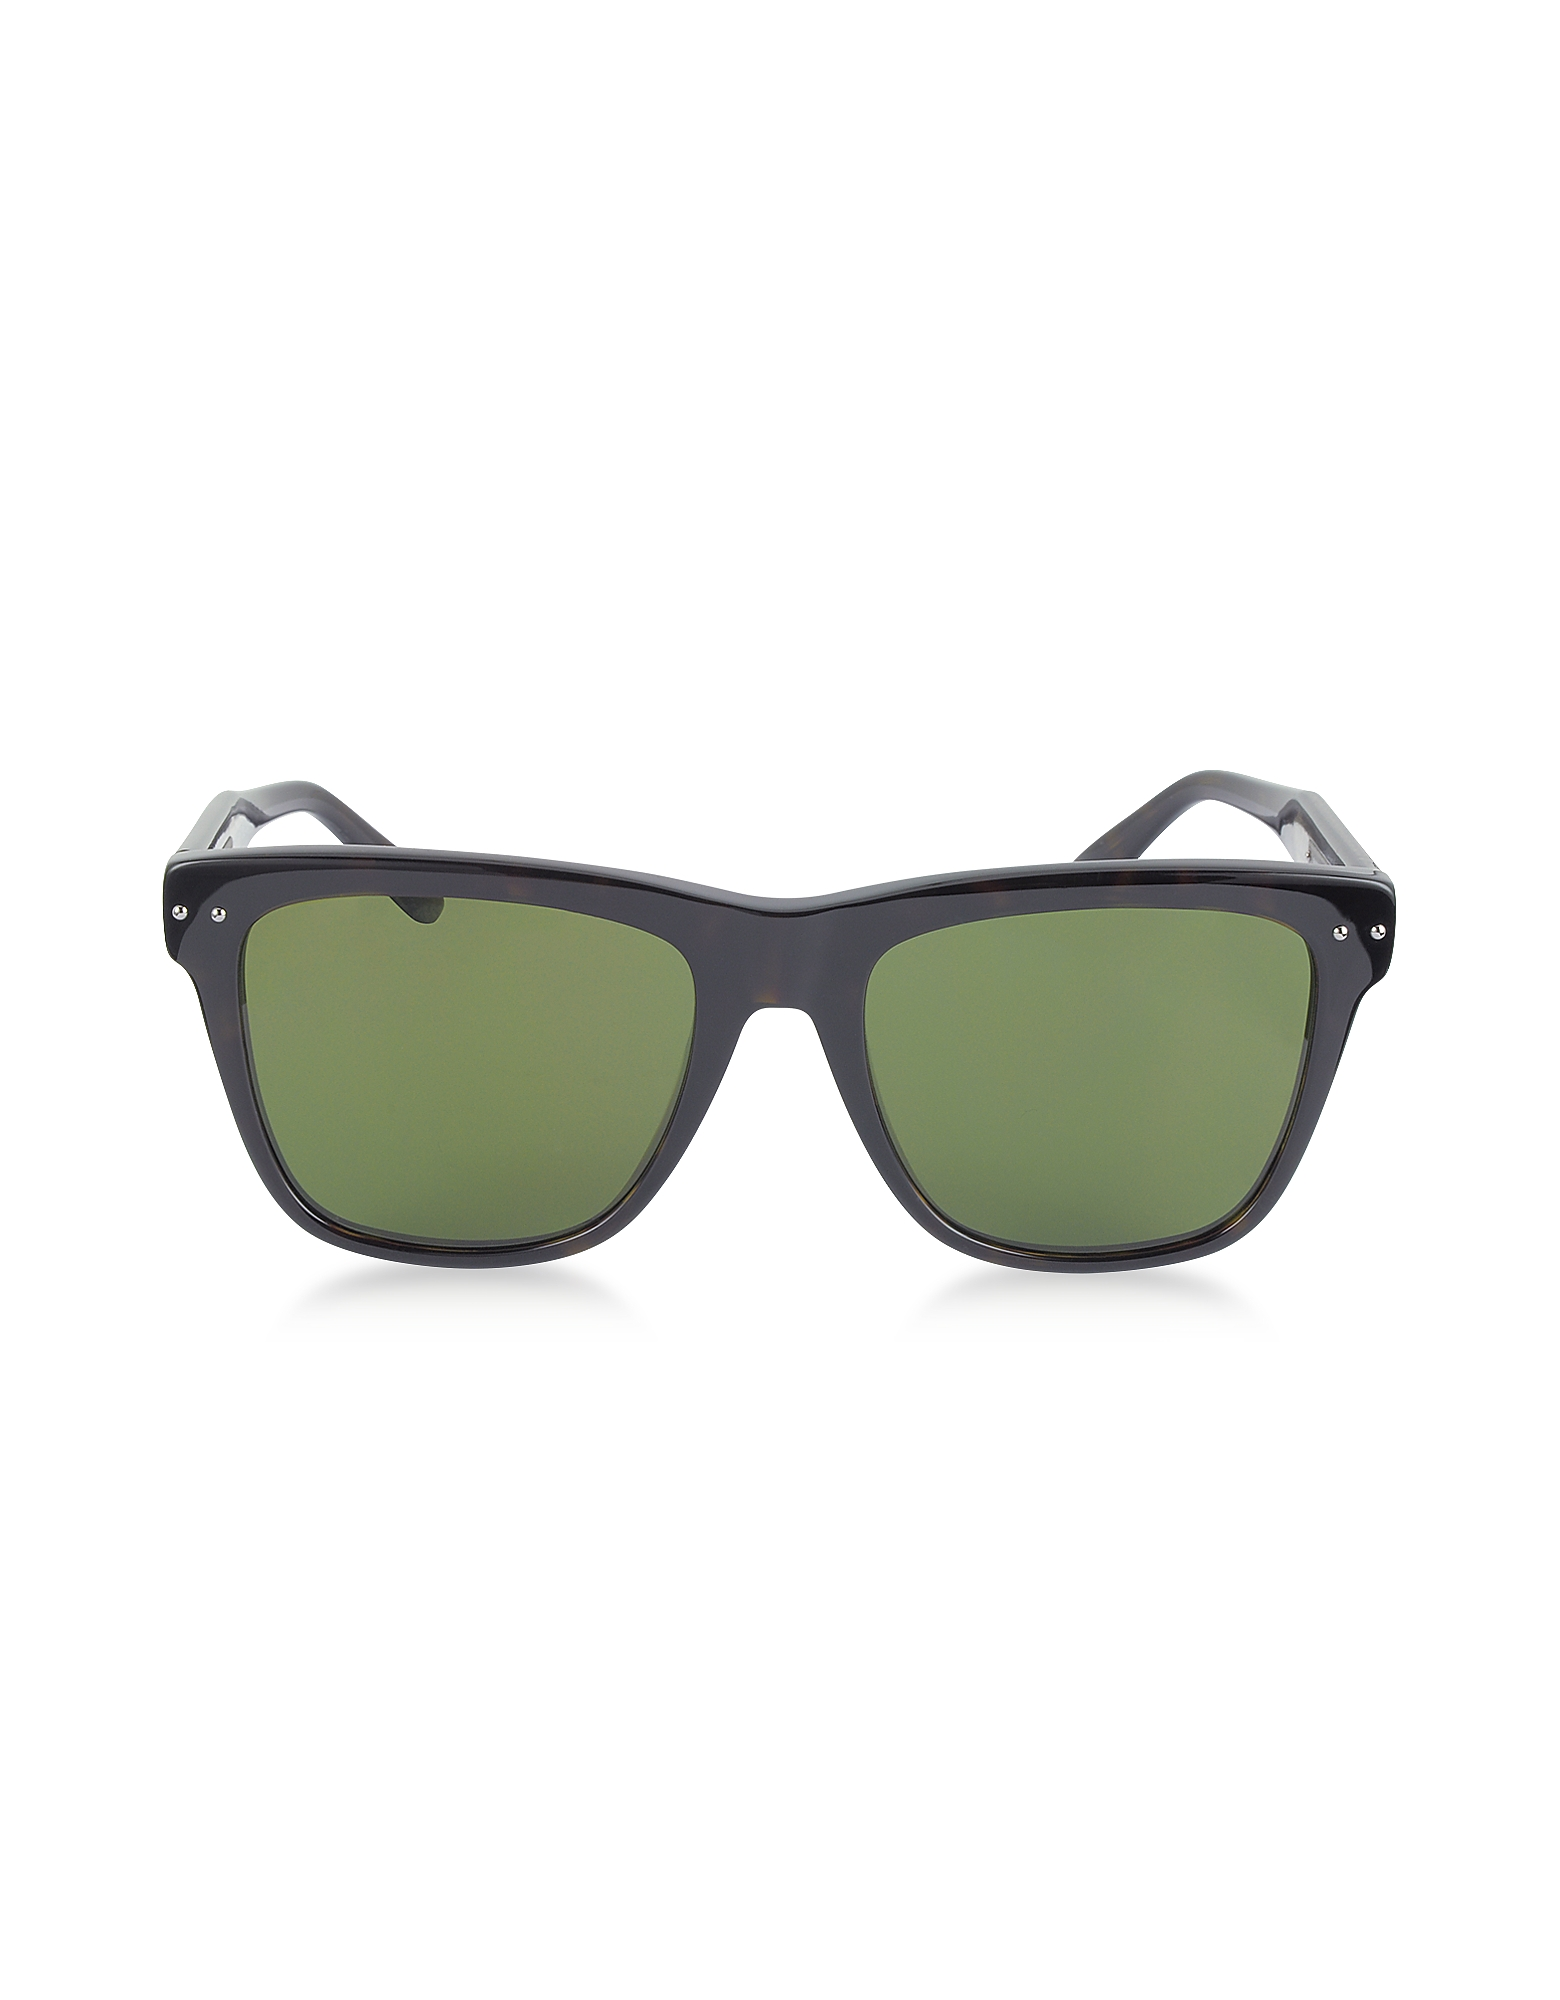 Bottega Veneta Sunglasses, BV0098S 005 Light Havana Acetate Frame Unisex Sunglasses